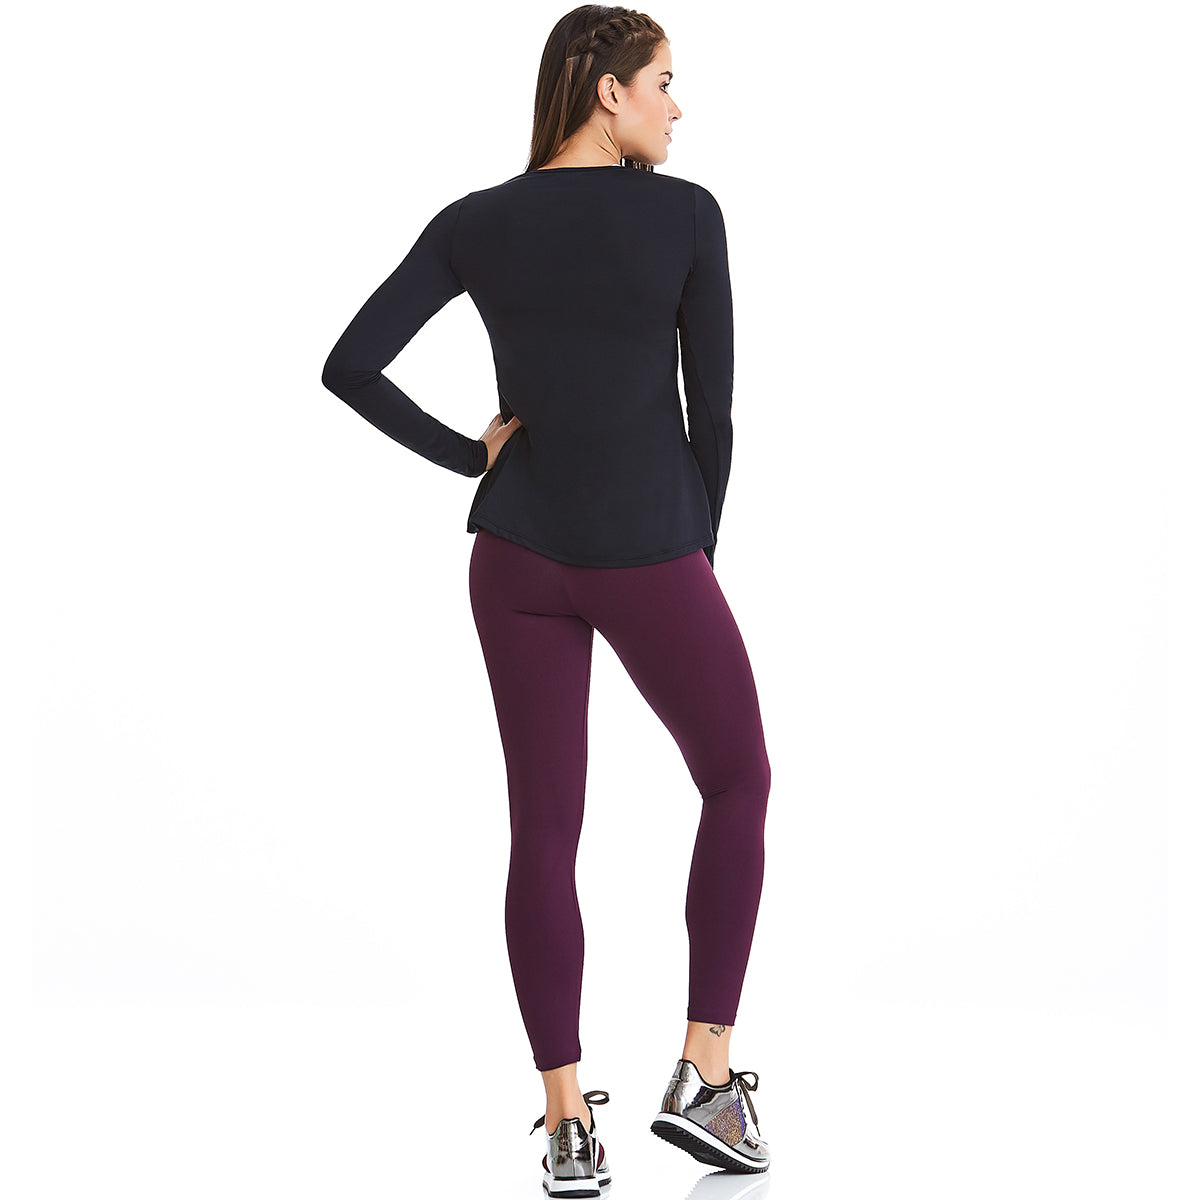 Alto High Waist Basic Leggings | Compression Fitness wear | Palisa Dance Boutique